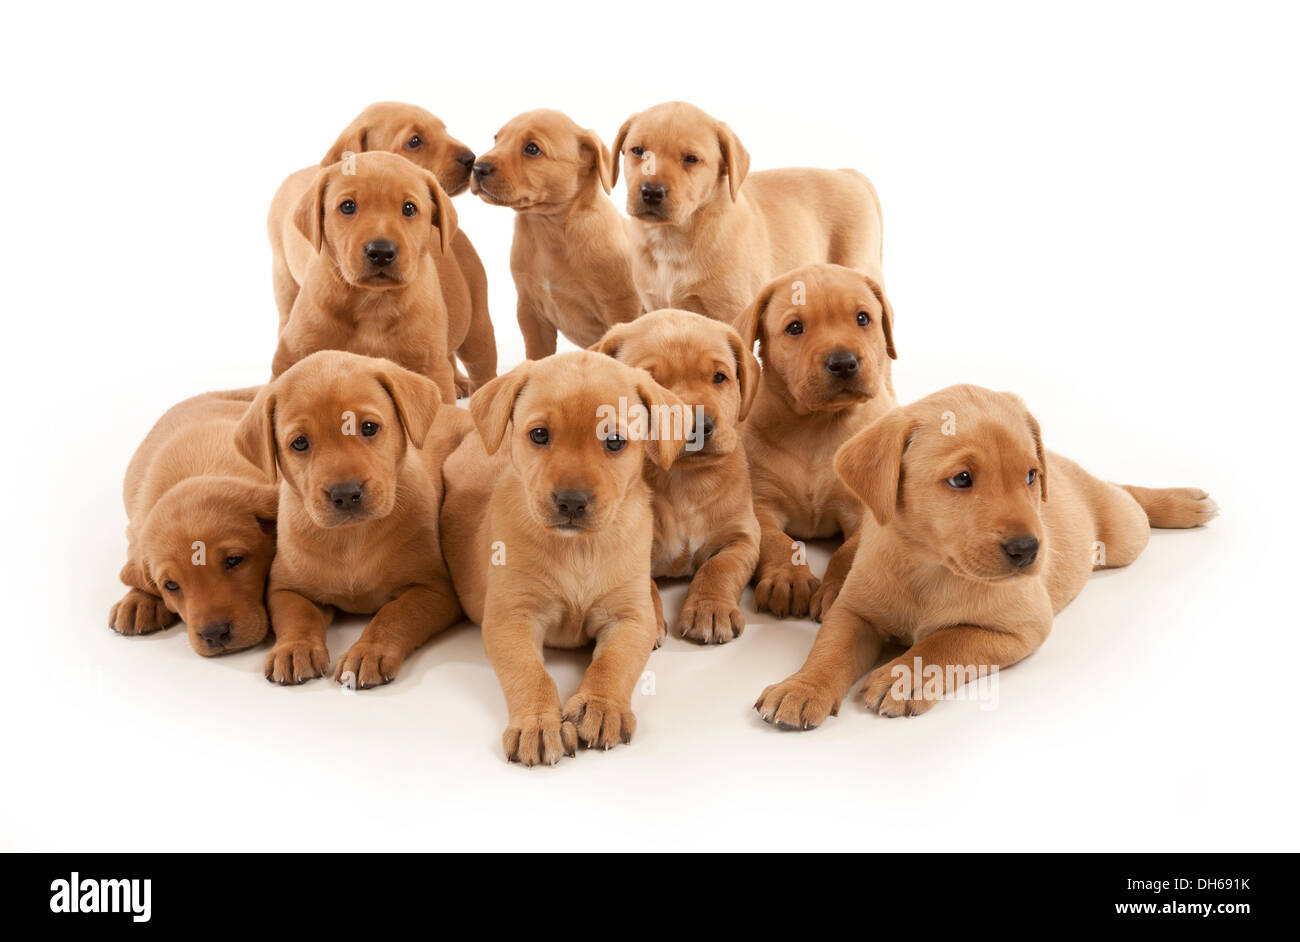 A litter of Ten Fox Red Labrador puppies - Stock Image